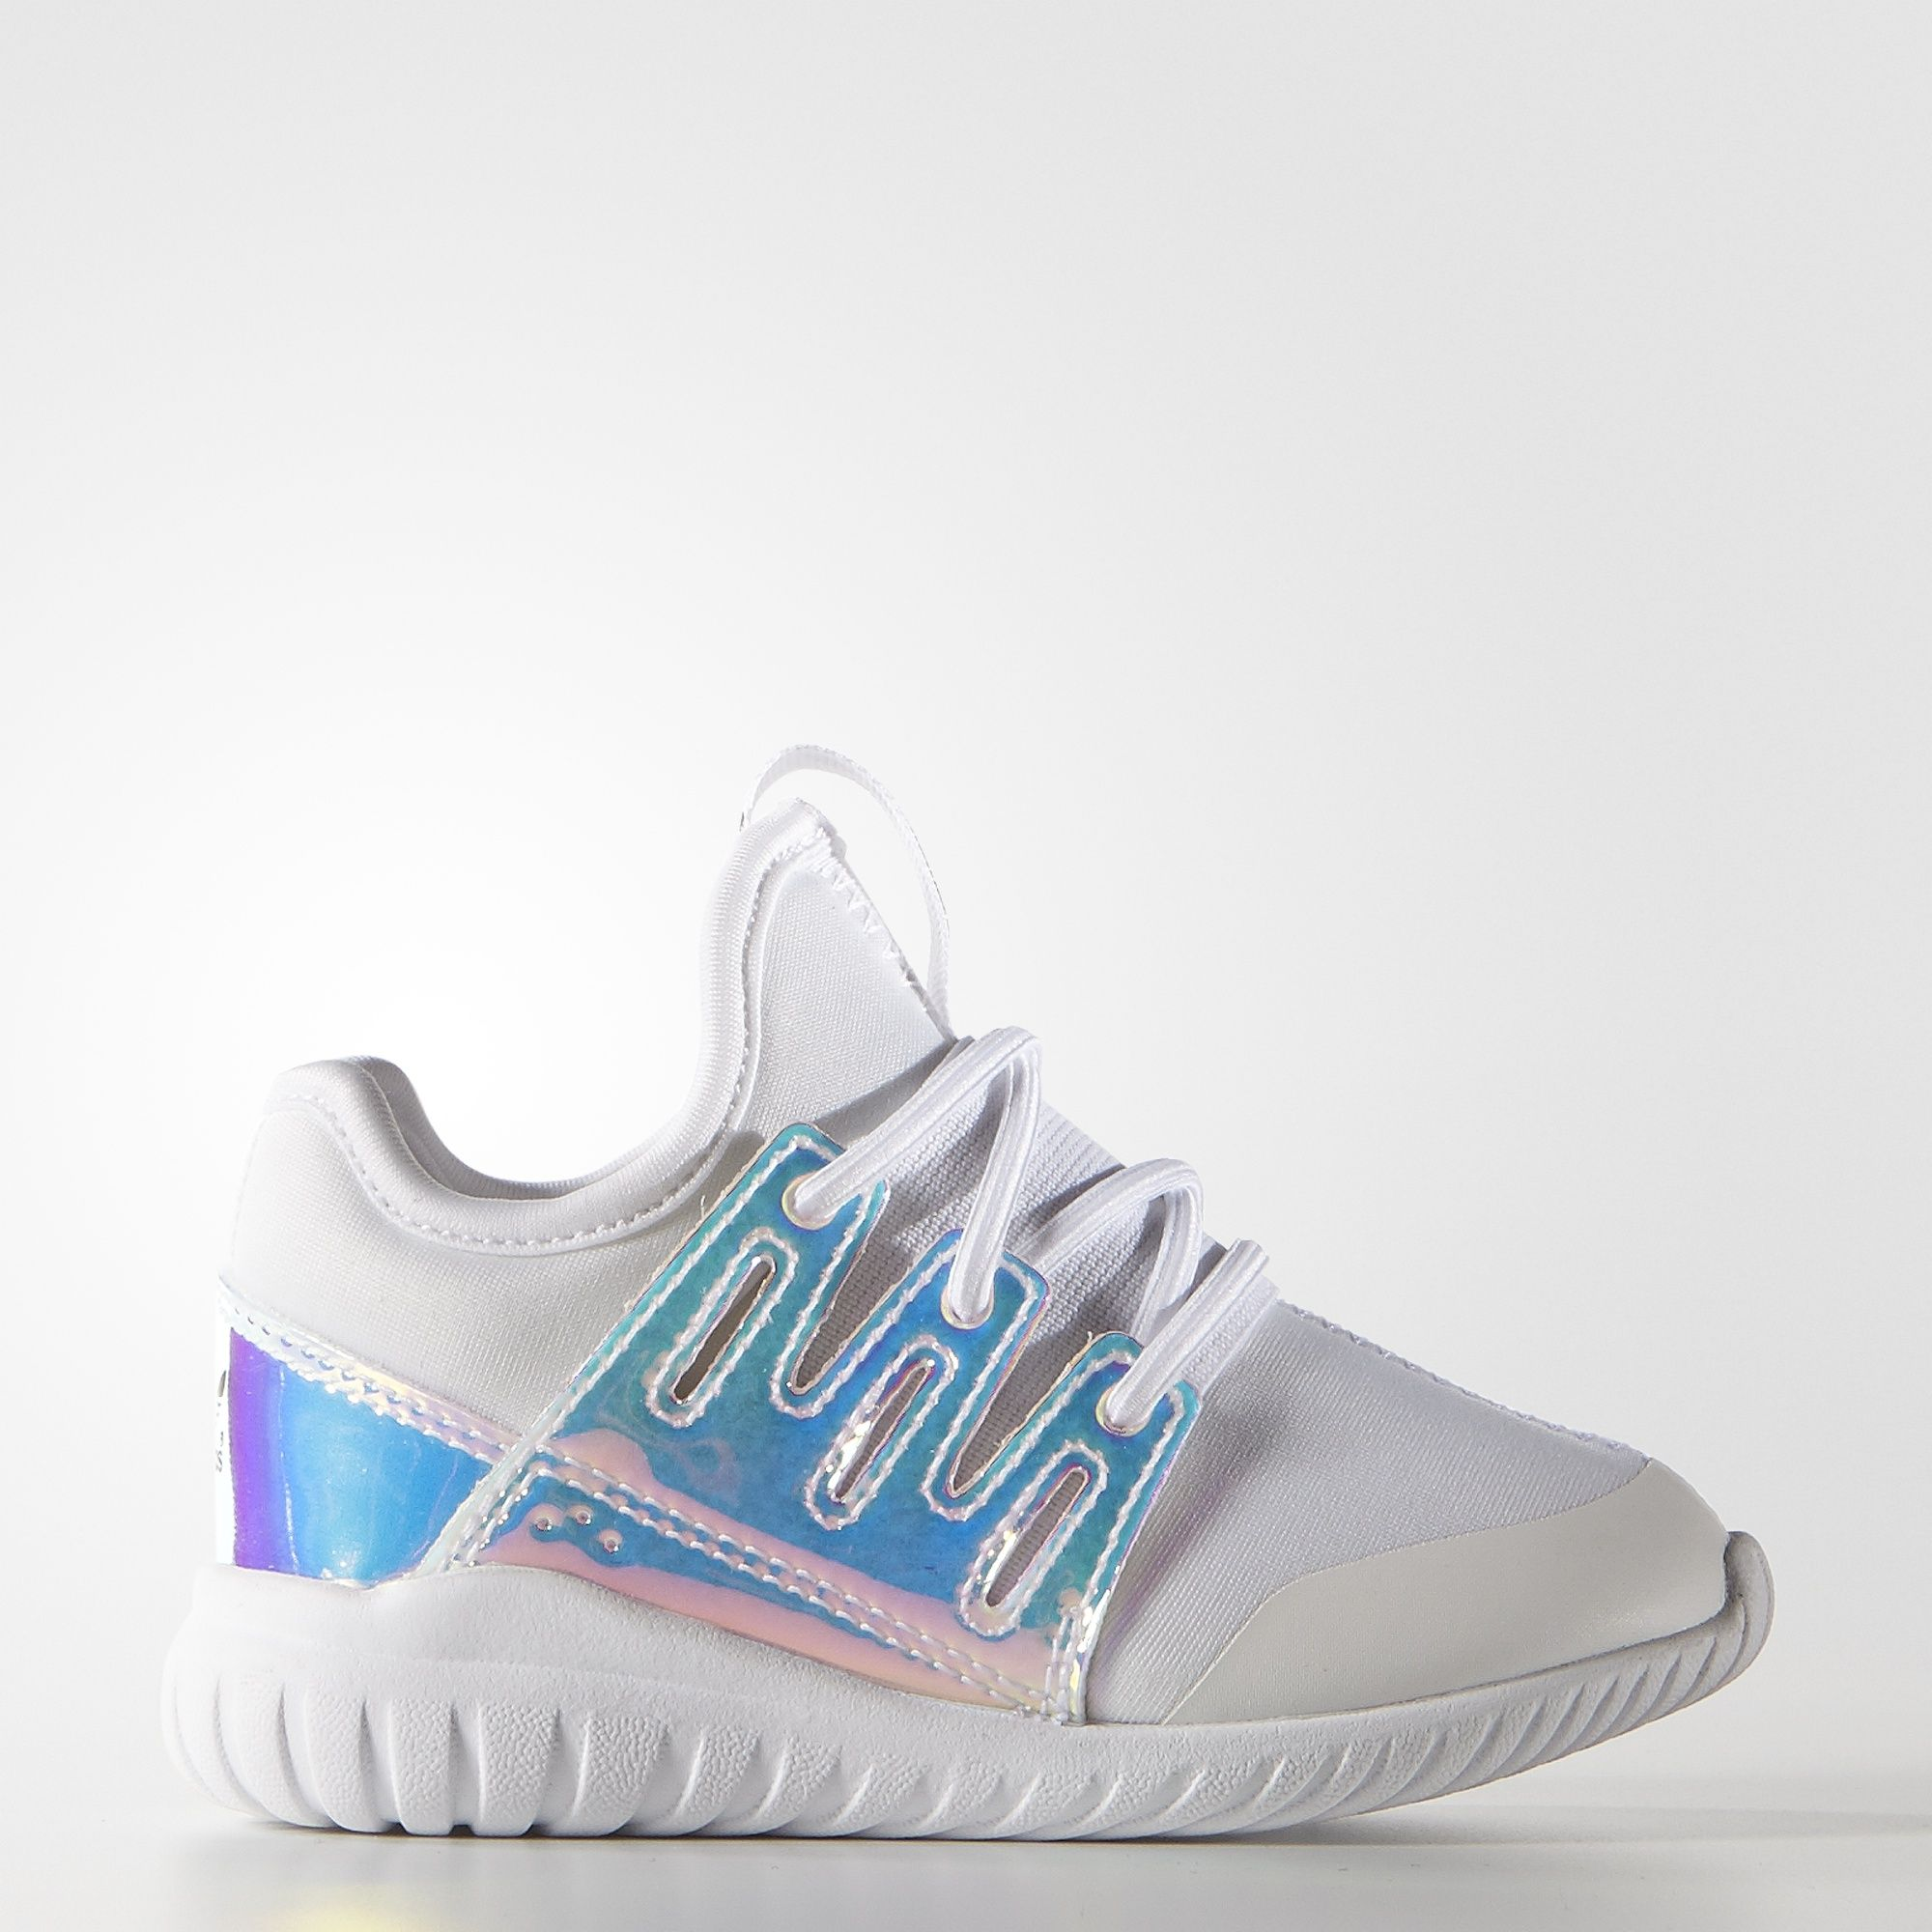 ... norway how to buy 611c2 50c3d tubular radial shoes u2022 adidas 5a1c7  5759c 4a16a547e